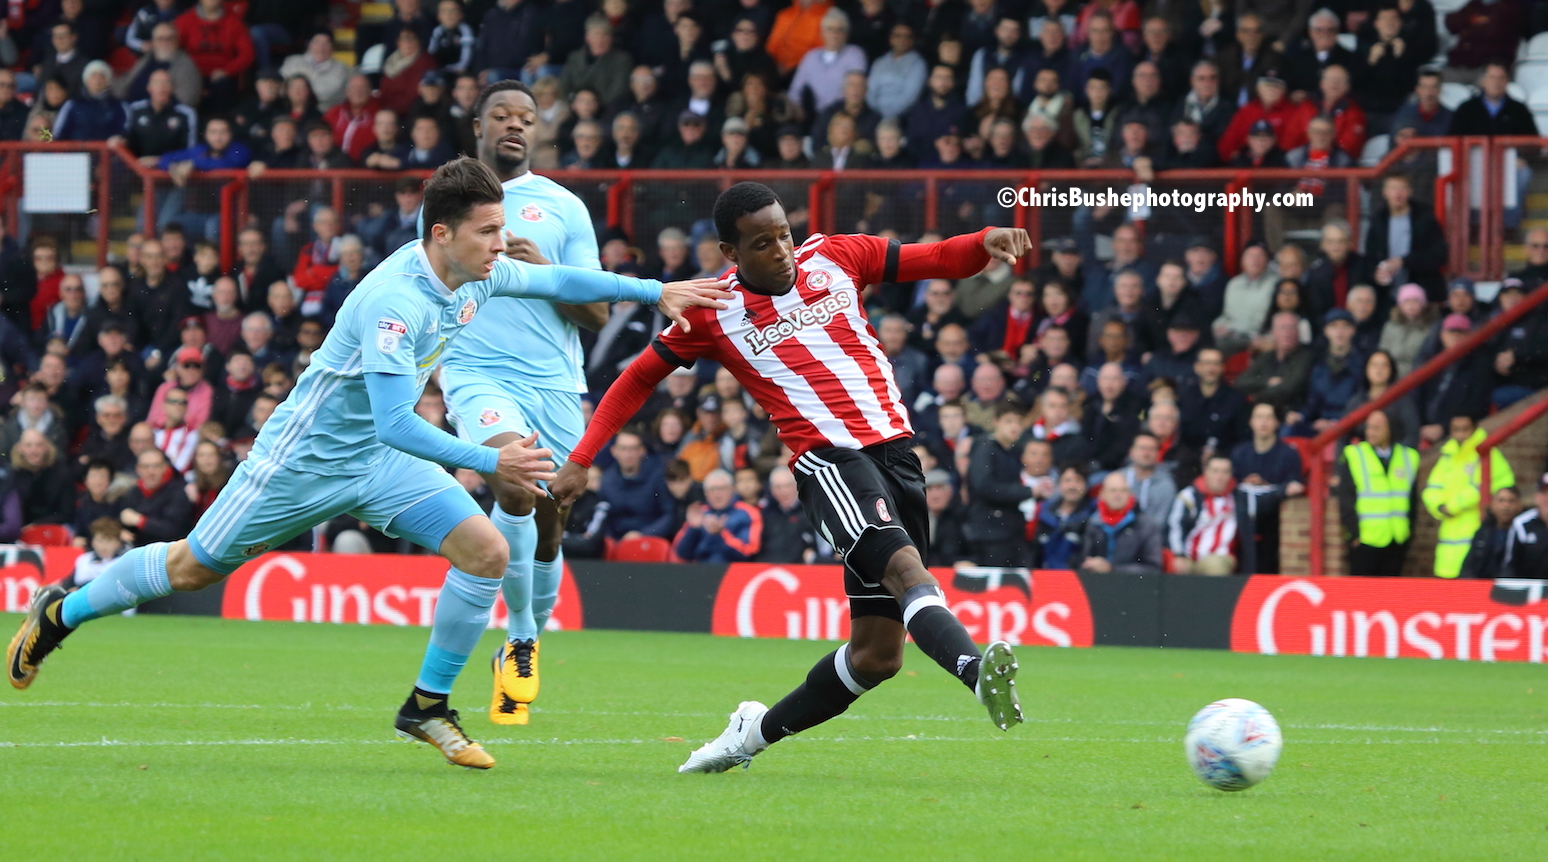 Florian Jozefzoon shoots to create the tap in for Yennaris